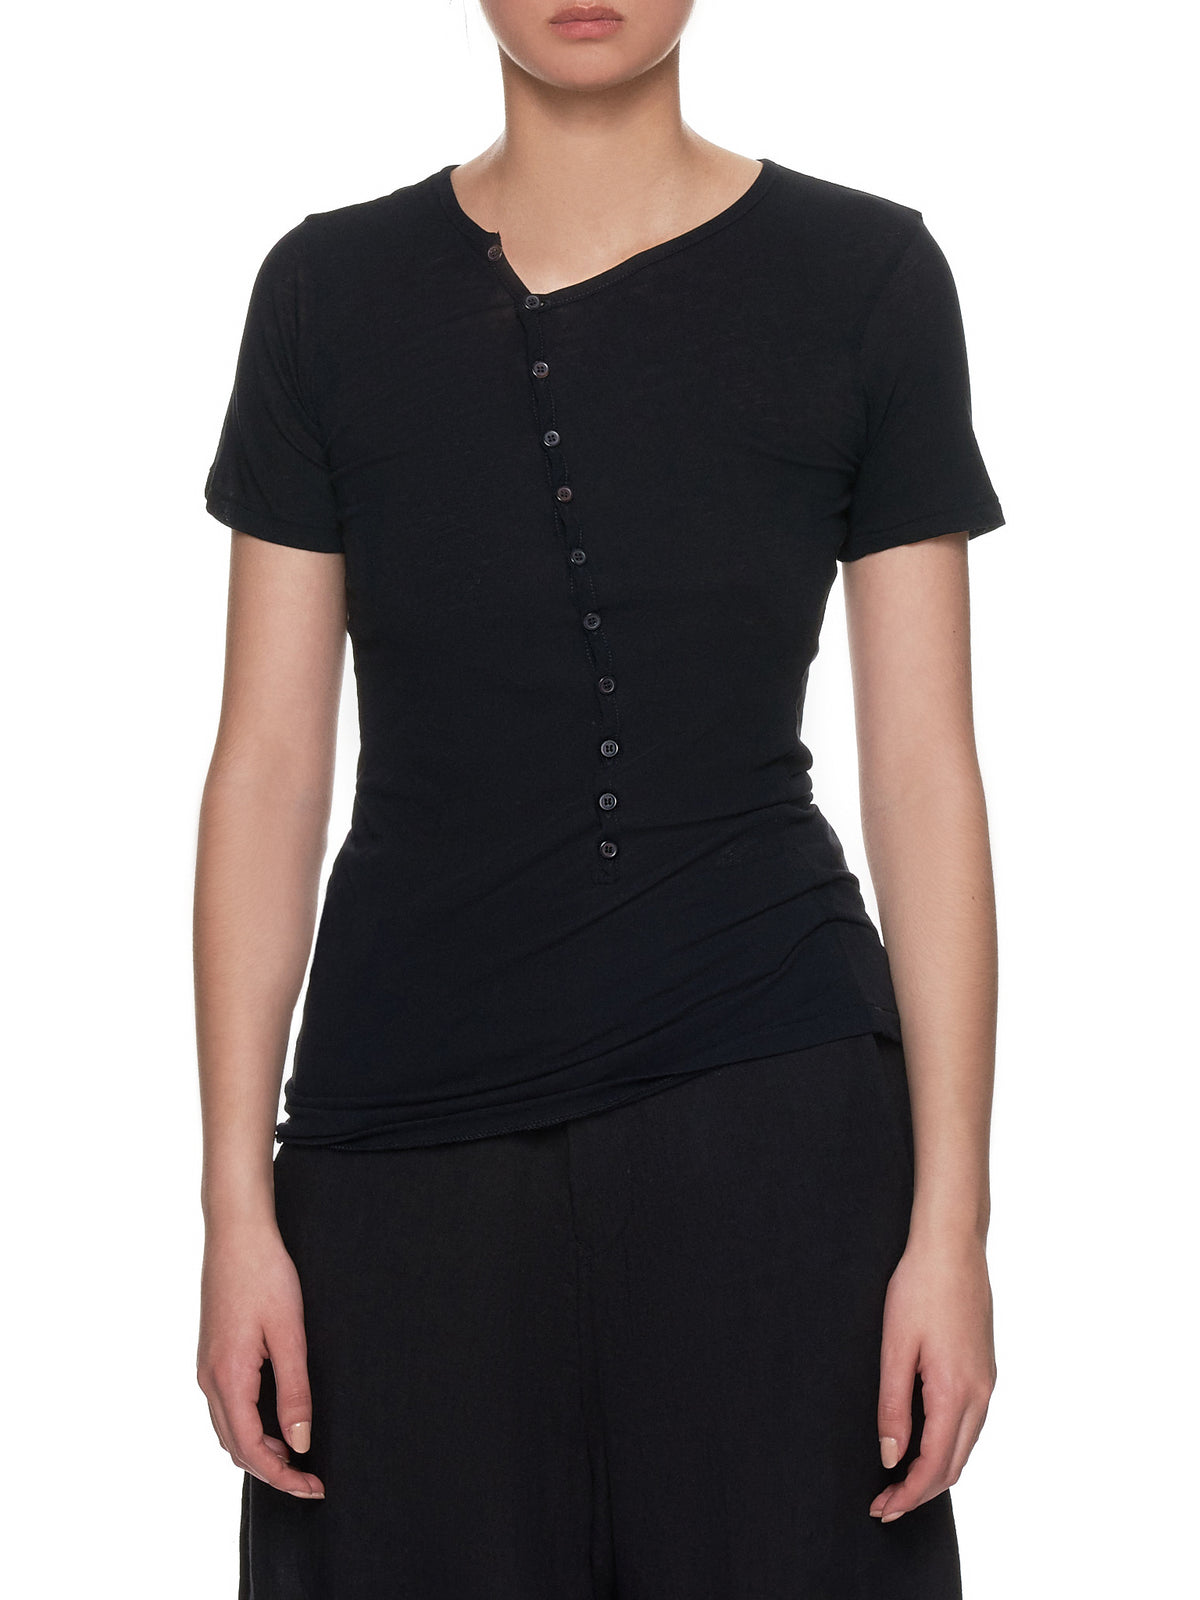 Asymmetrical Button-Up T-Shirt (FH-T30-070-BLACK)